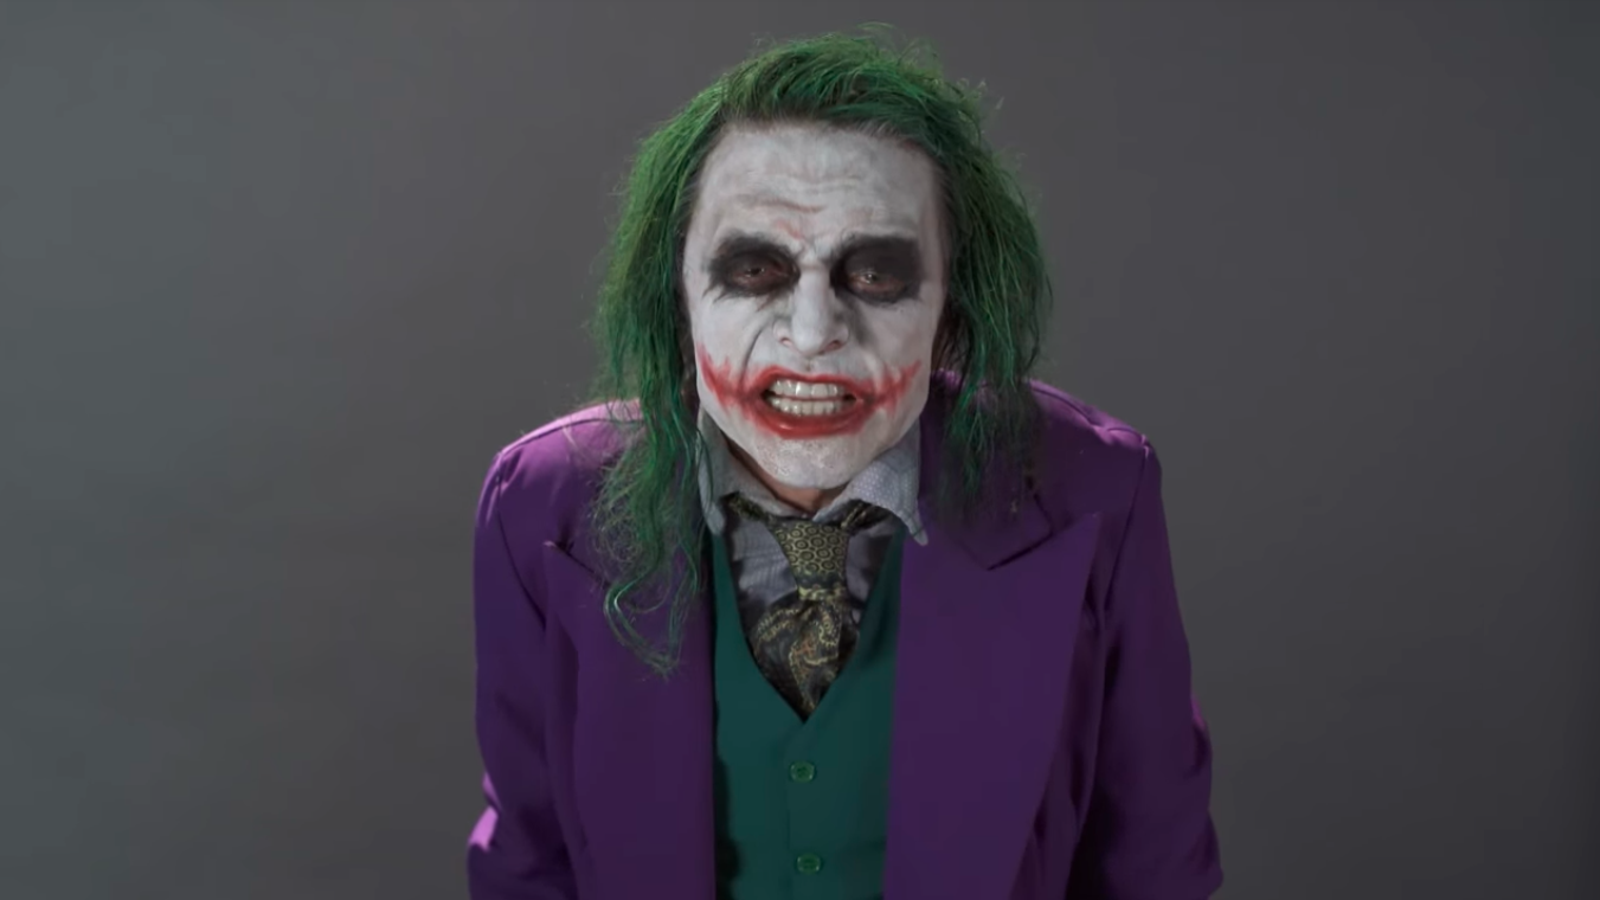 Tommy Wiseau Tour >> Tommy Wiseau's Joker audition tape is absolutely, unintentionally terrifying